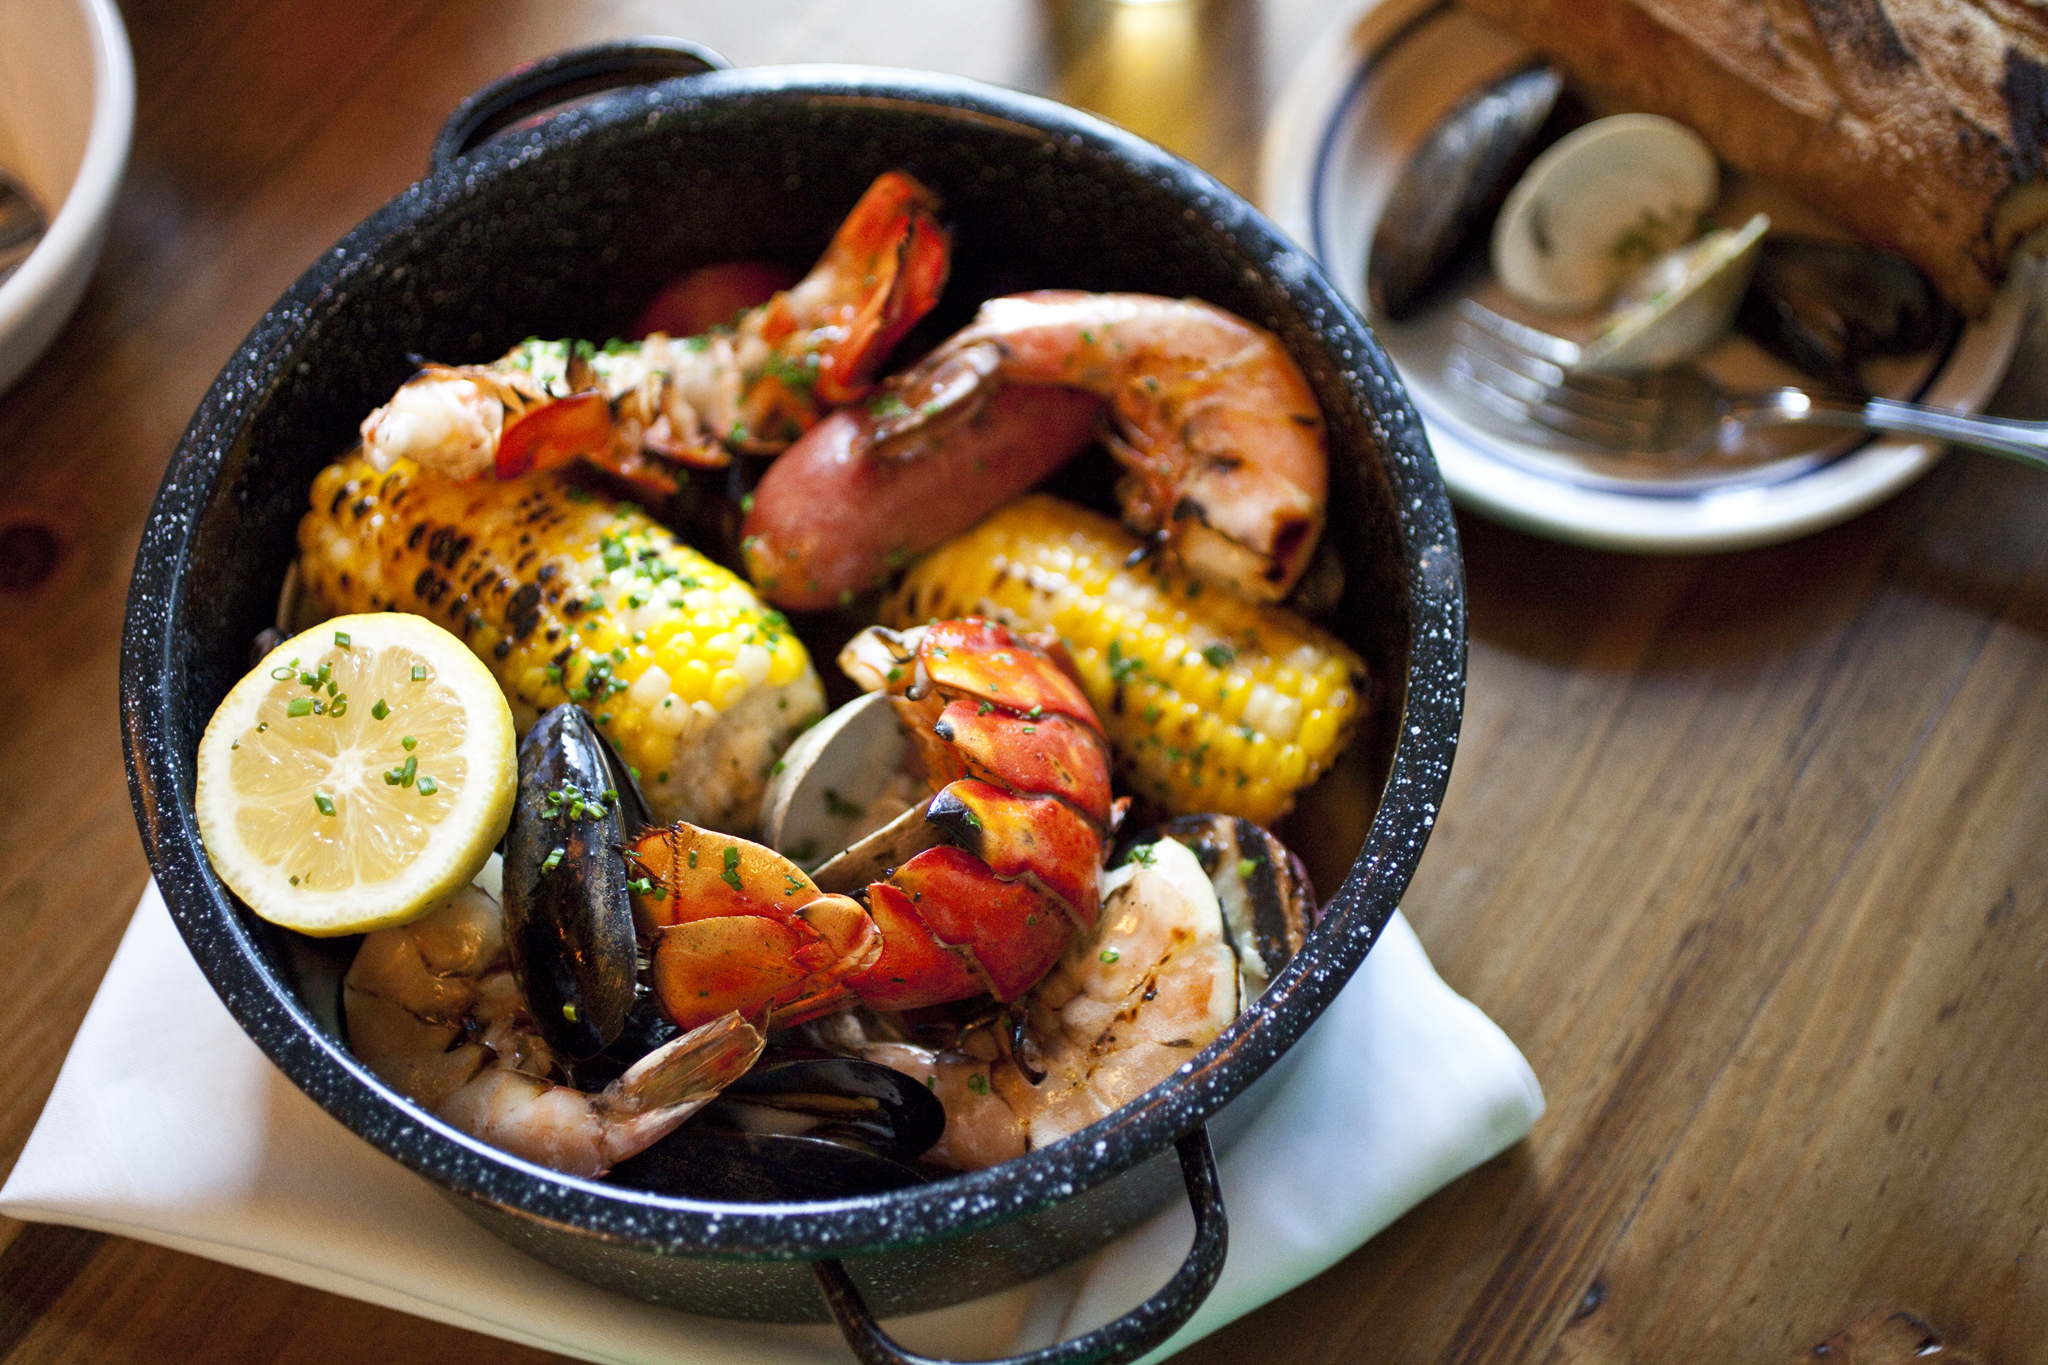 Cape Cod clambake for two at Extra Fancy